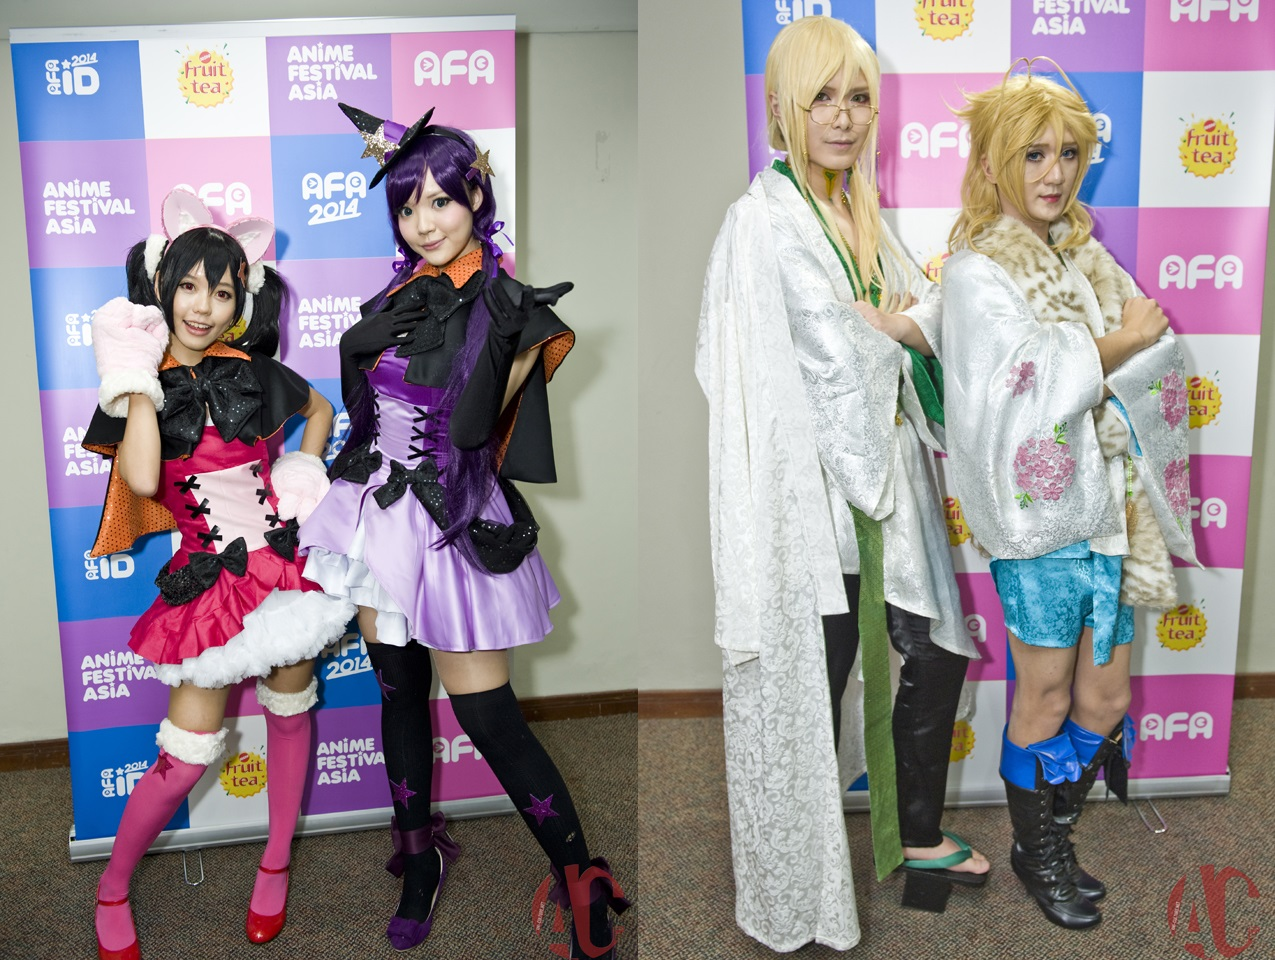 AFA ID 2014: Interview with Angie, Ying Tze, Hana and Baozi